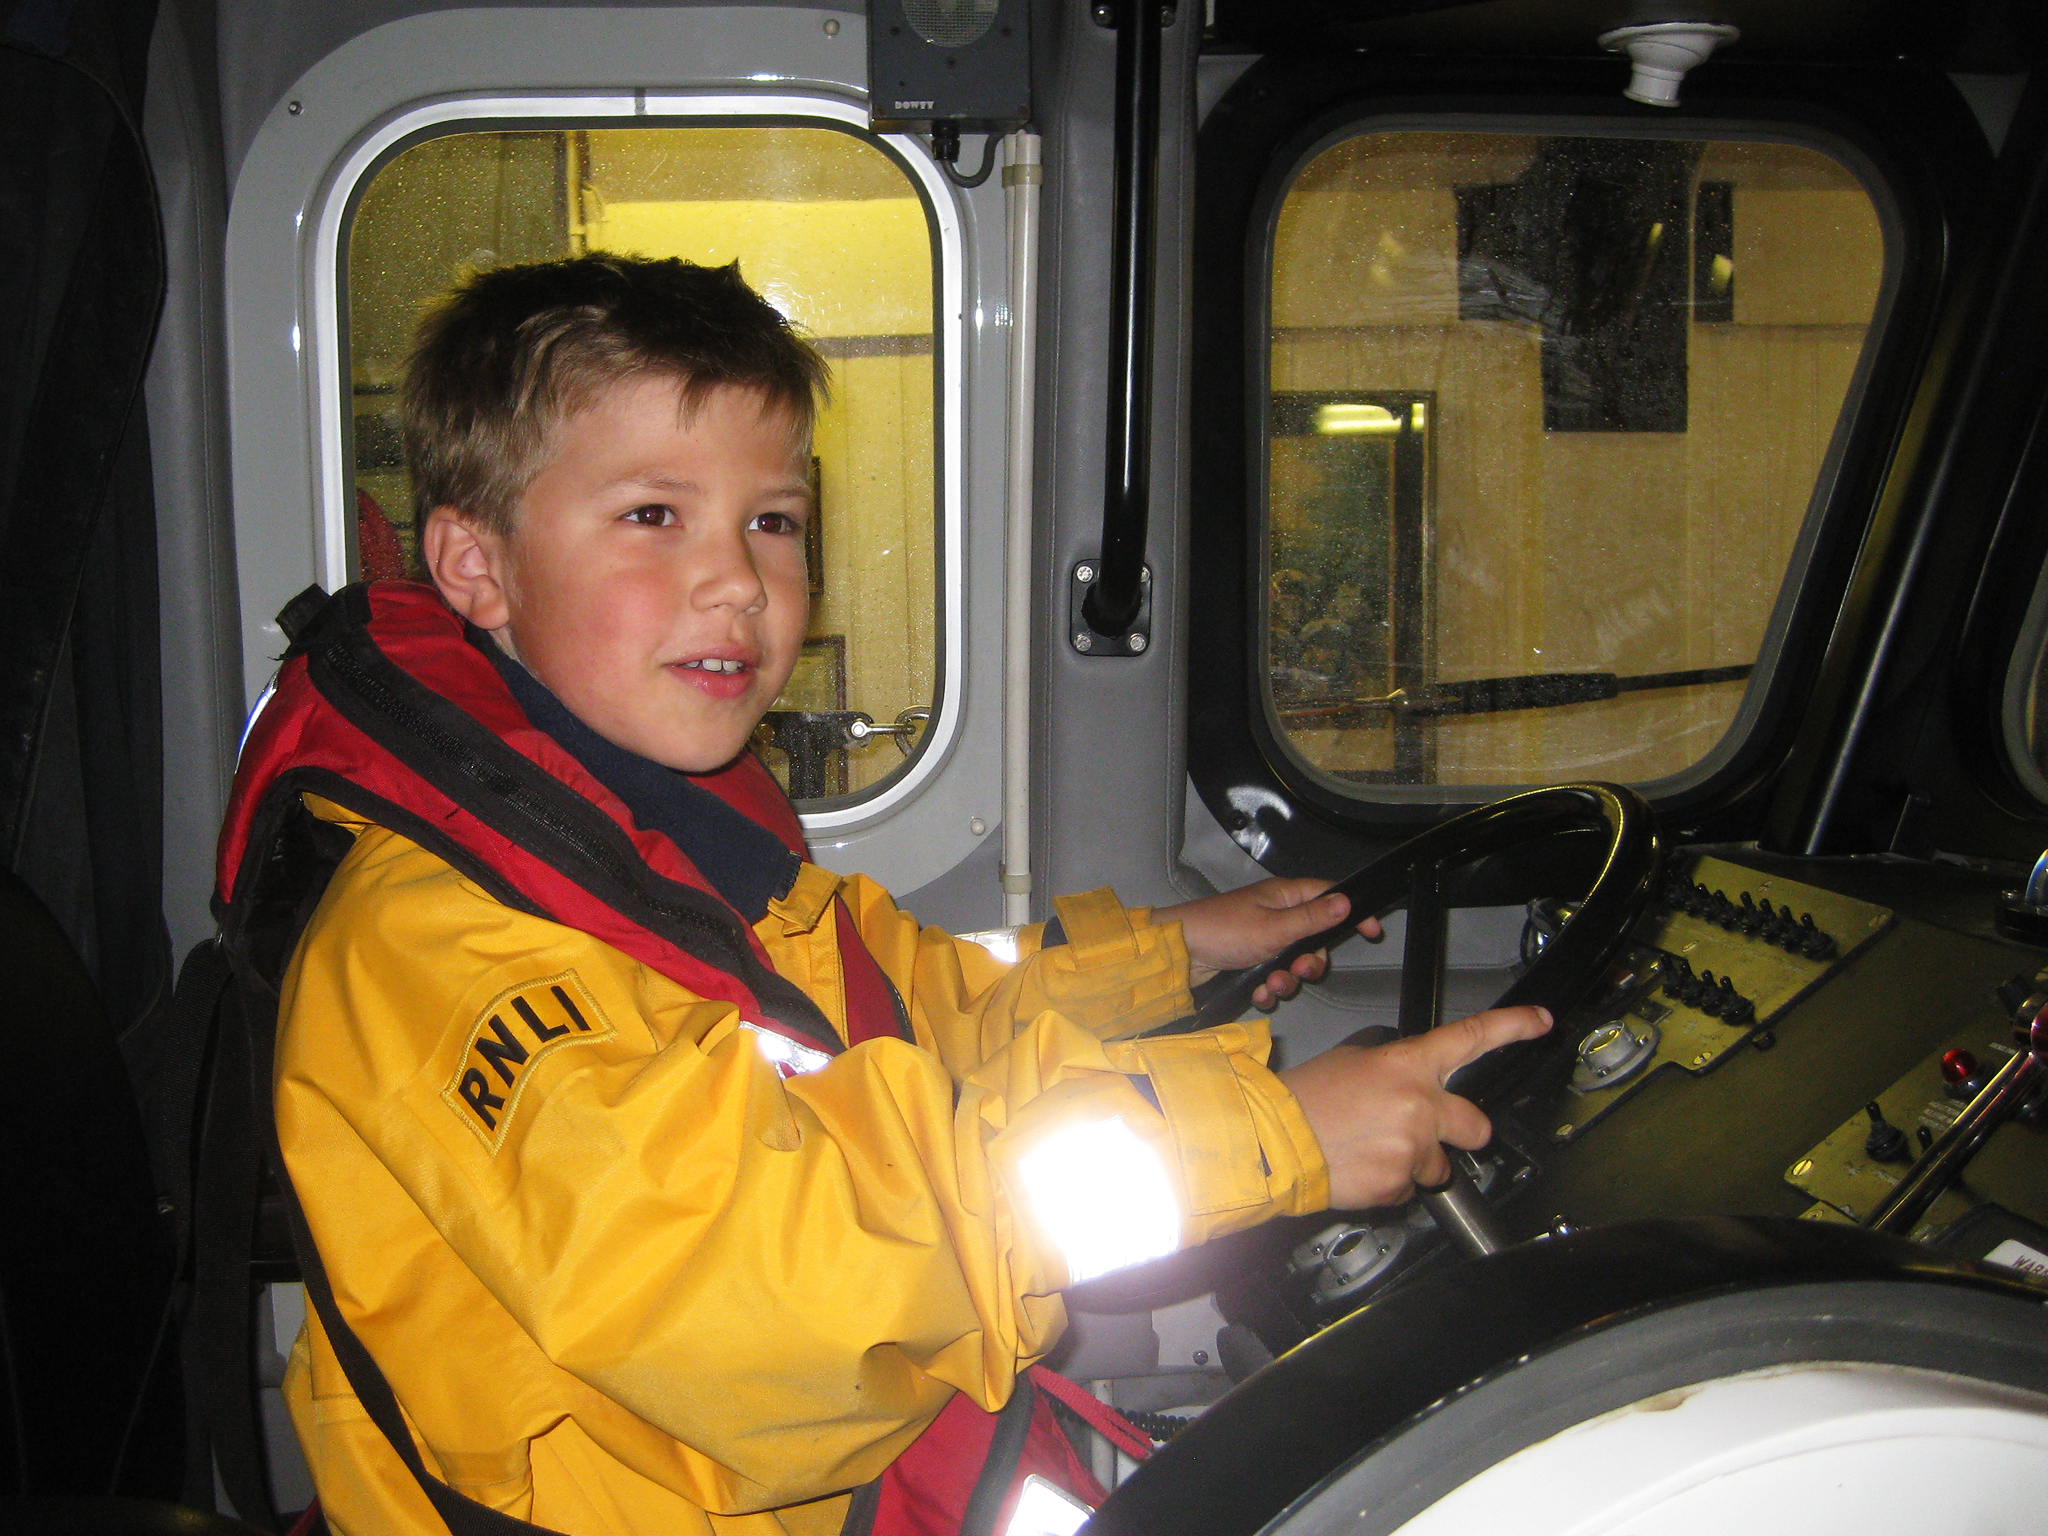 James Dye at the helm of our all weather lifeboat during his visit to the station